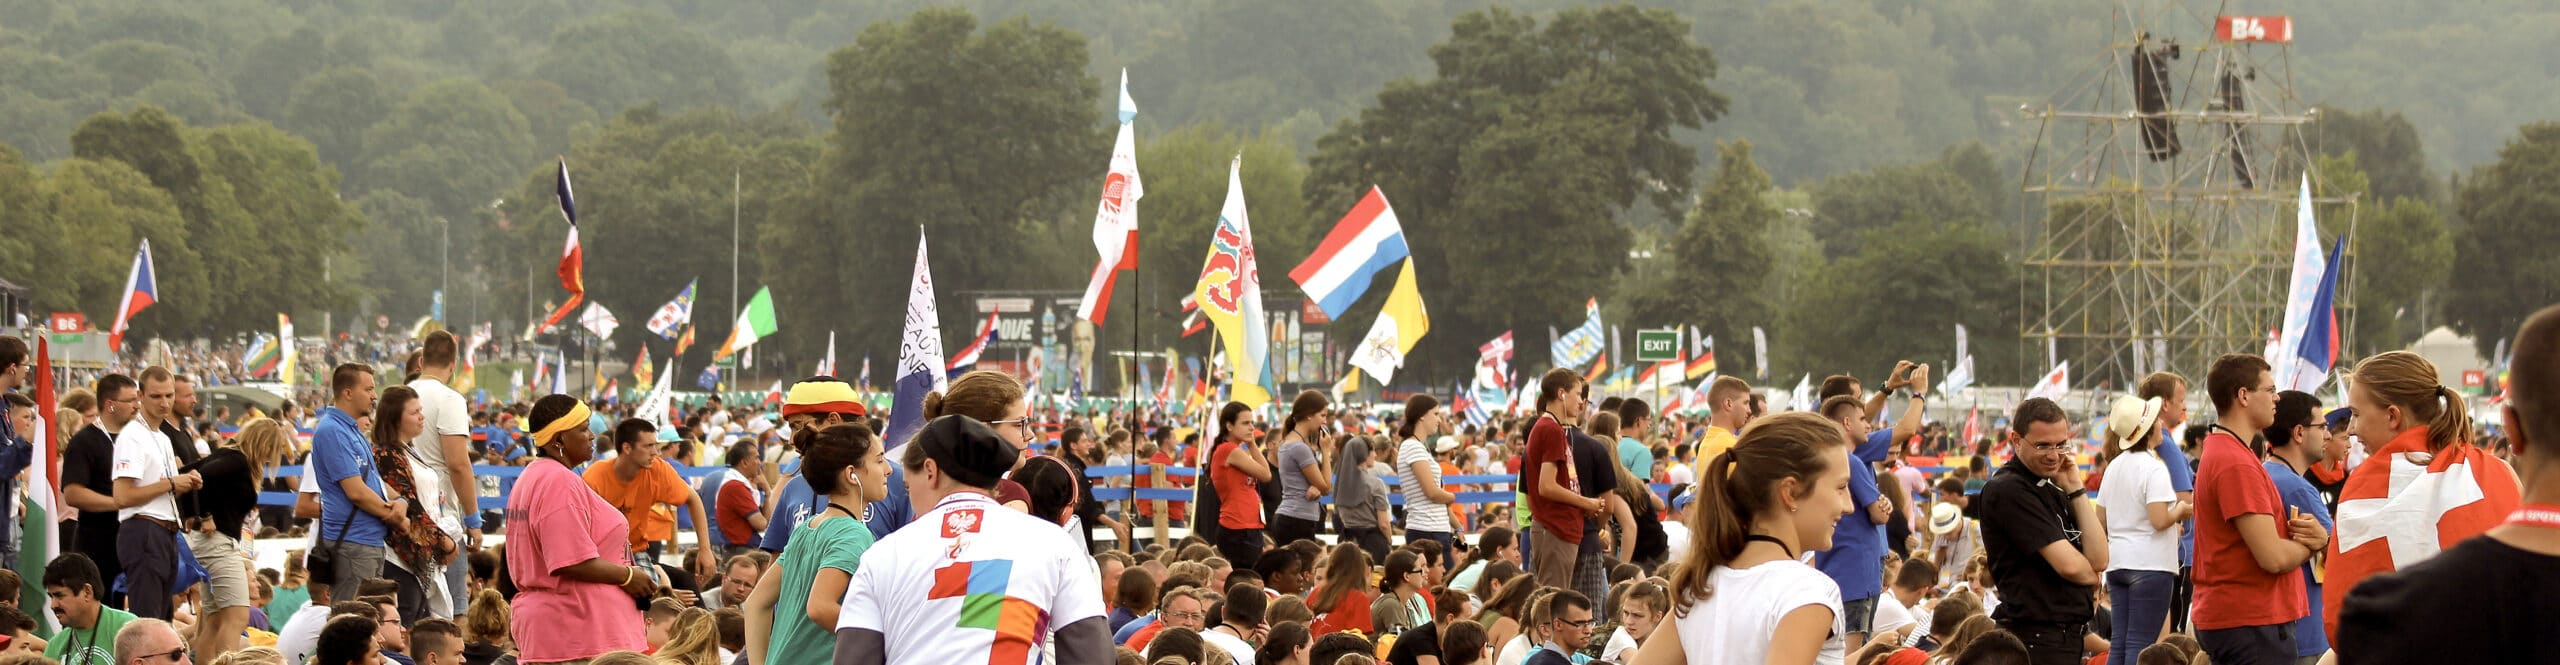 A diverse crowd of pilgrims at World Youth Day